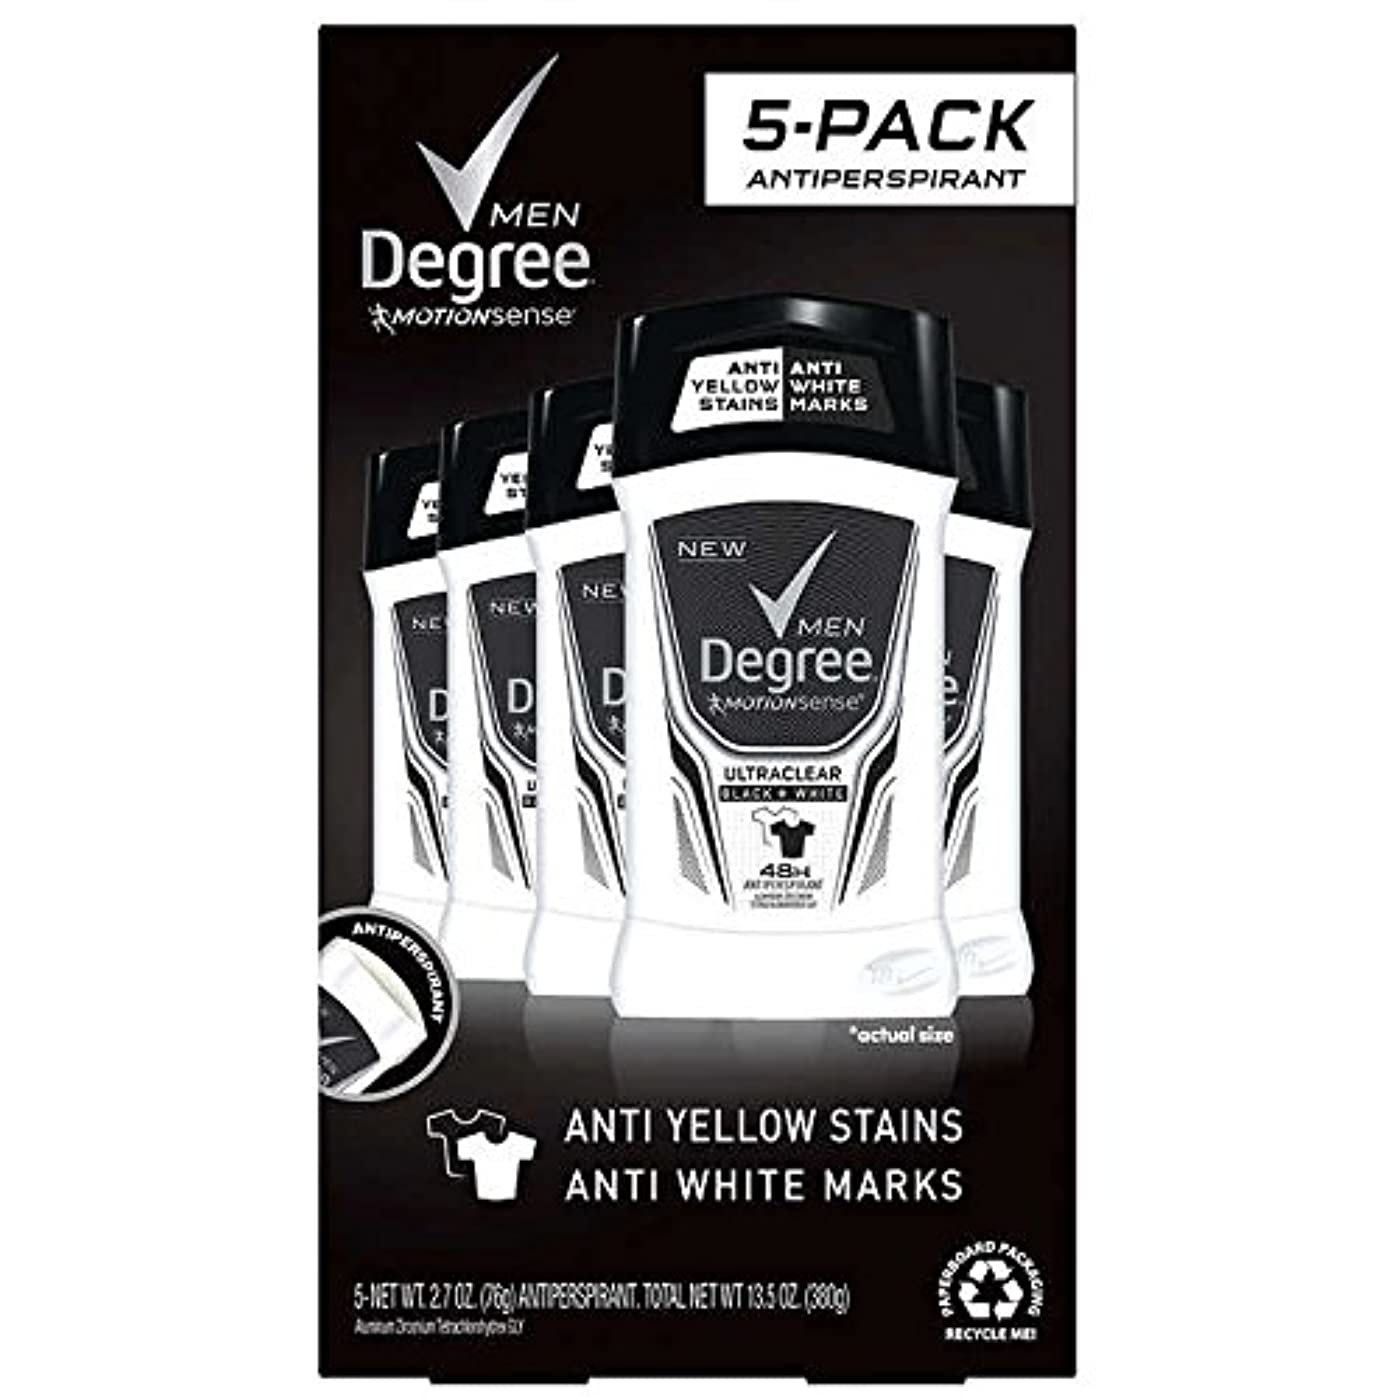 の中で火抵抗Degree Men Ultra Clear Black + White Solid Deodorant 2.7oz (76g), 5-pack [並行輸入品]